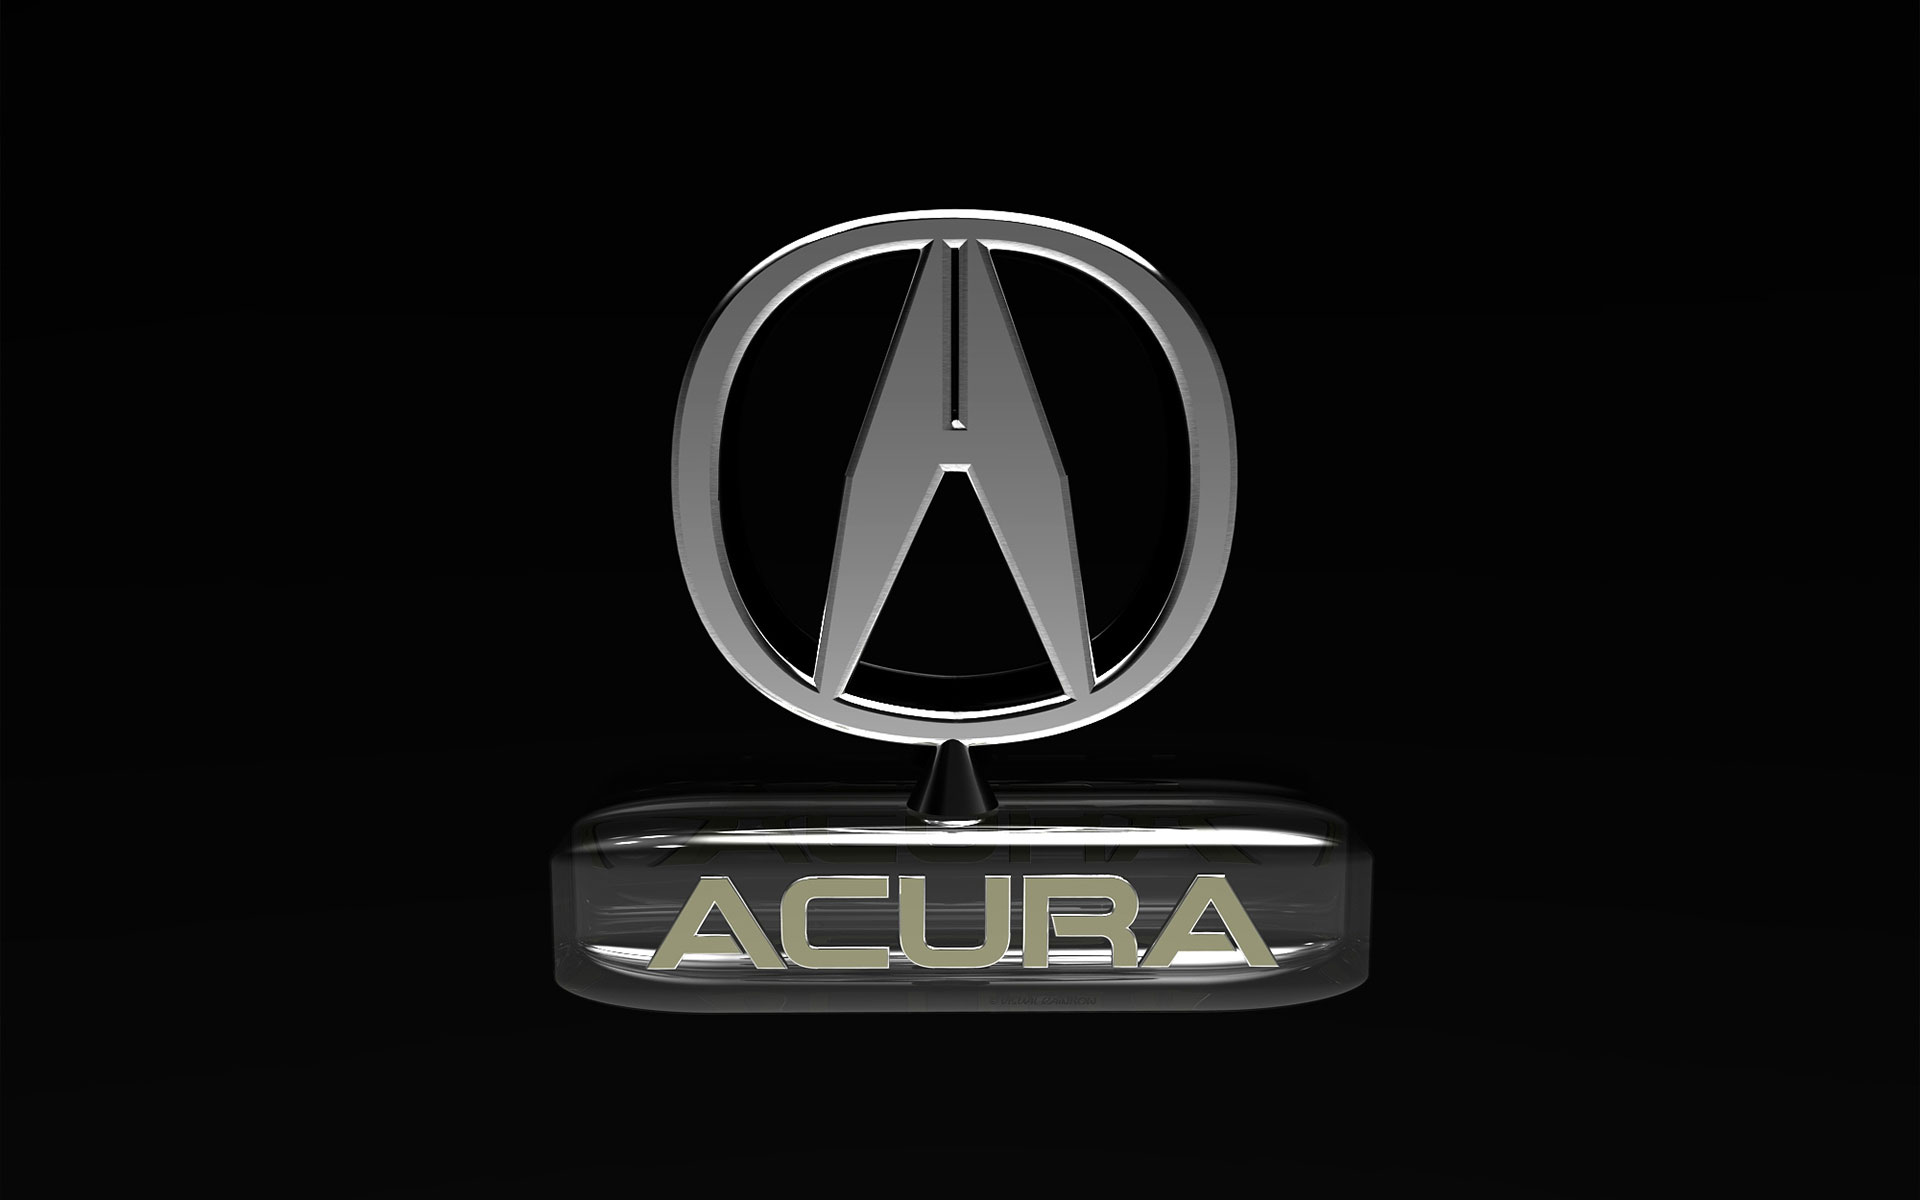 Acura-Logo-HD-in-HD-wallpaper-wpc9002030